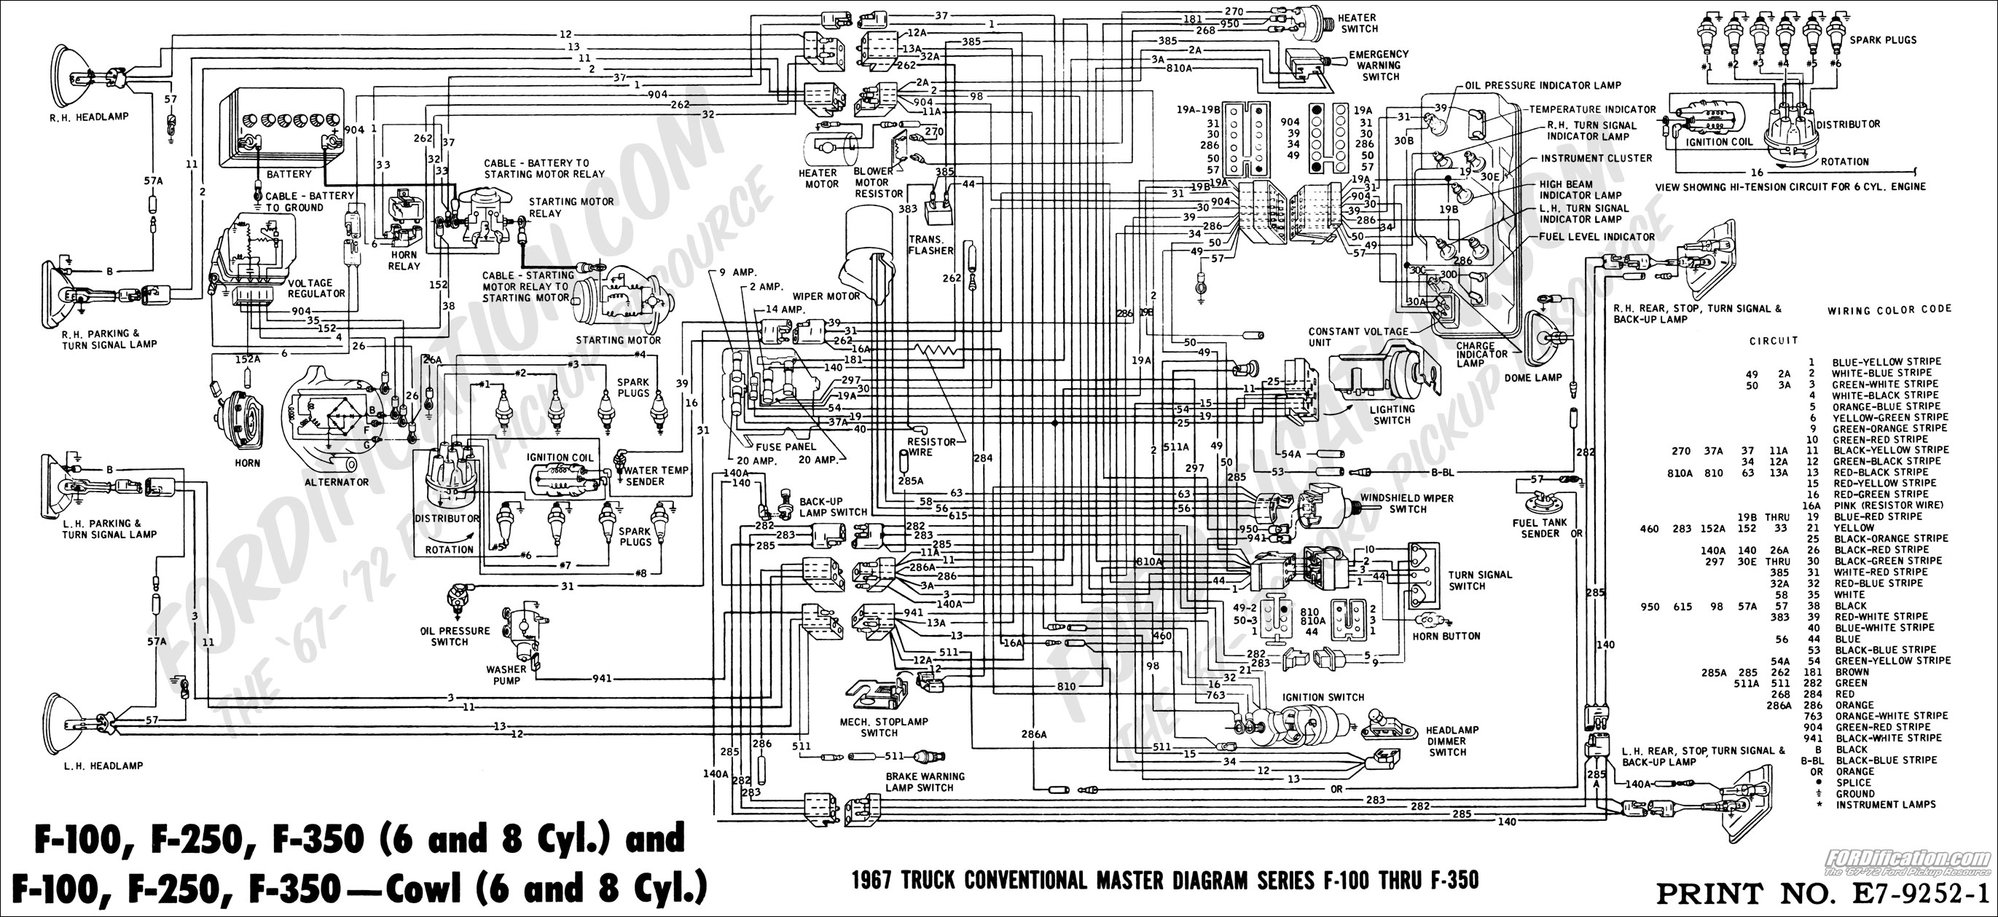 Enjoyable 1974 F250 Wire Schematic Basic Electronics Wiring Diagram Wiring 101 Orsalhahutechinfo